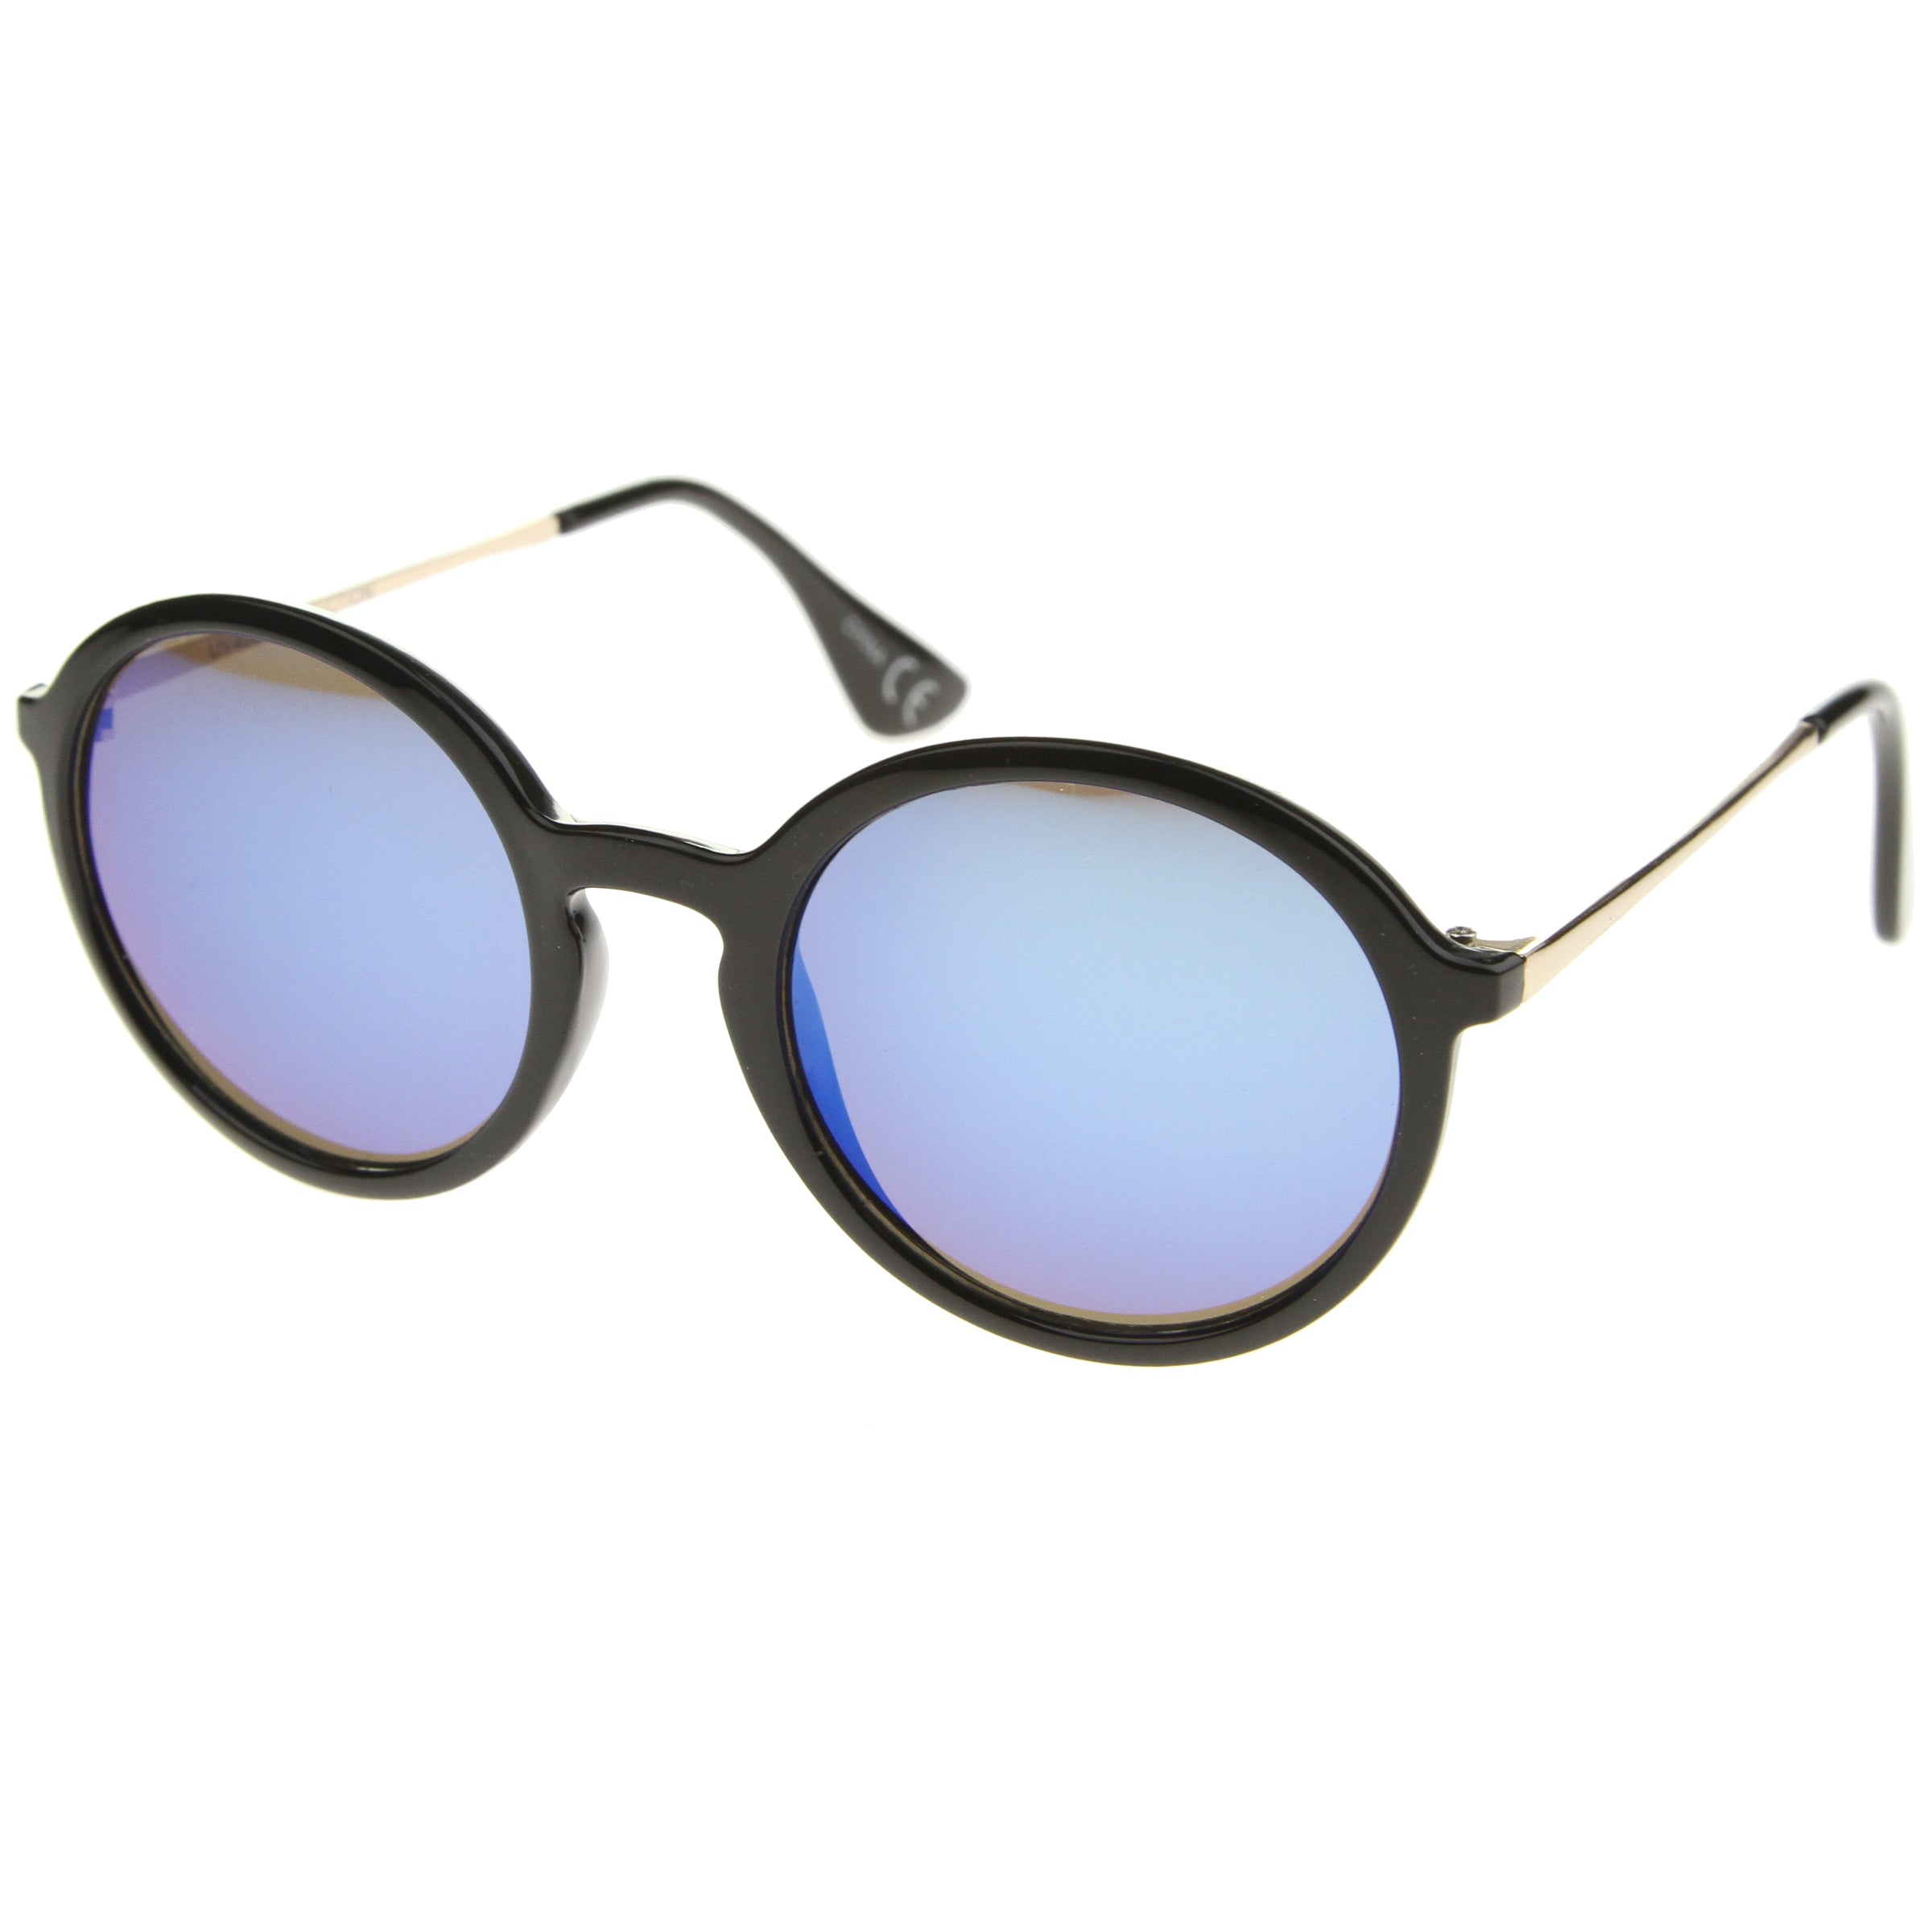 Mid Sized Modern Metal Temple Mirror Lens Round Sunglasses 49mm - sunglass.la - 2